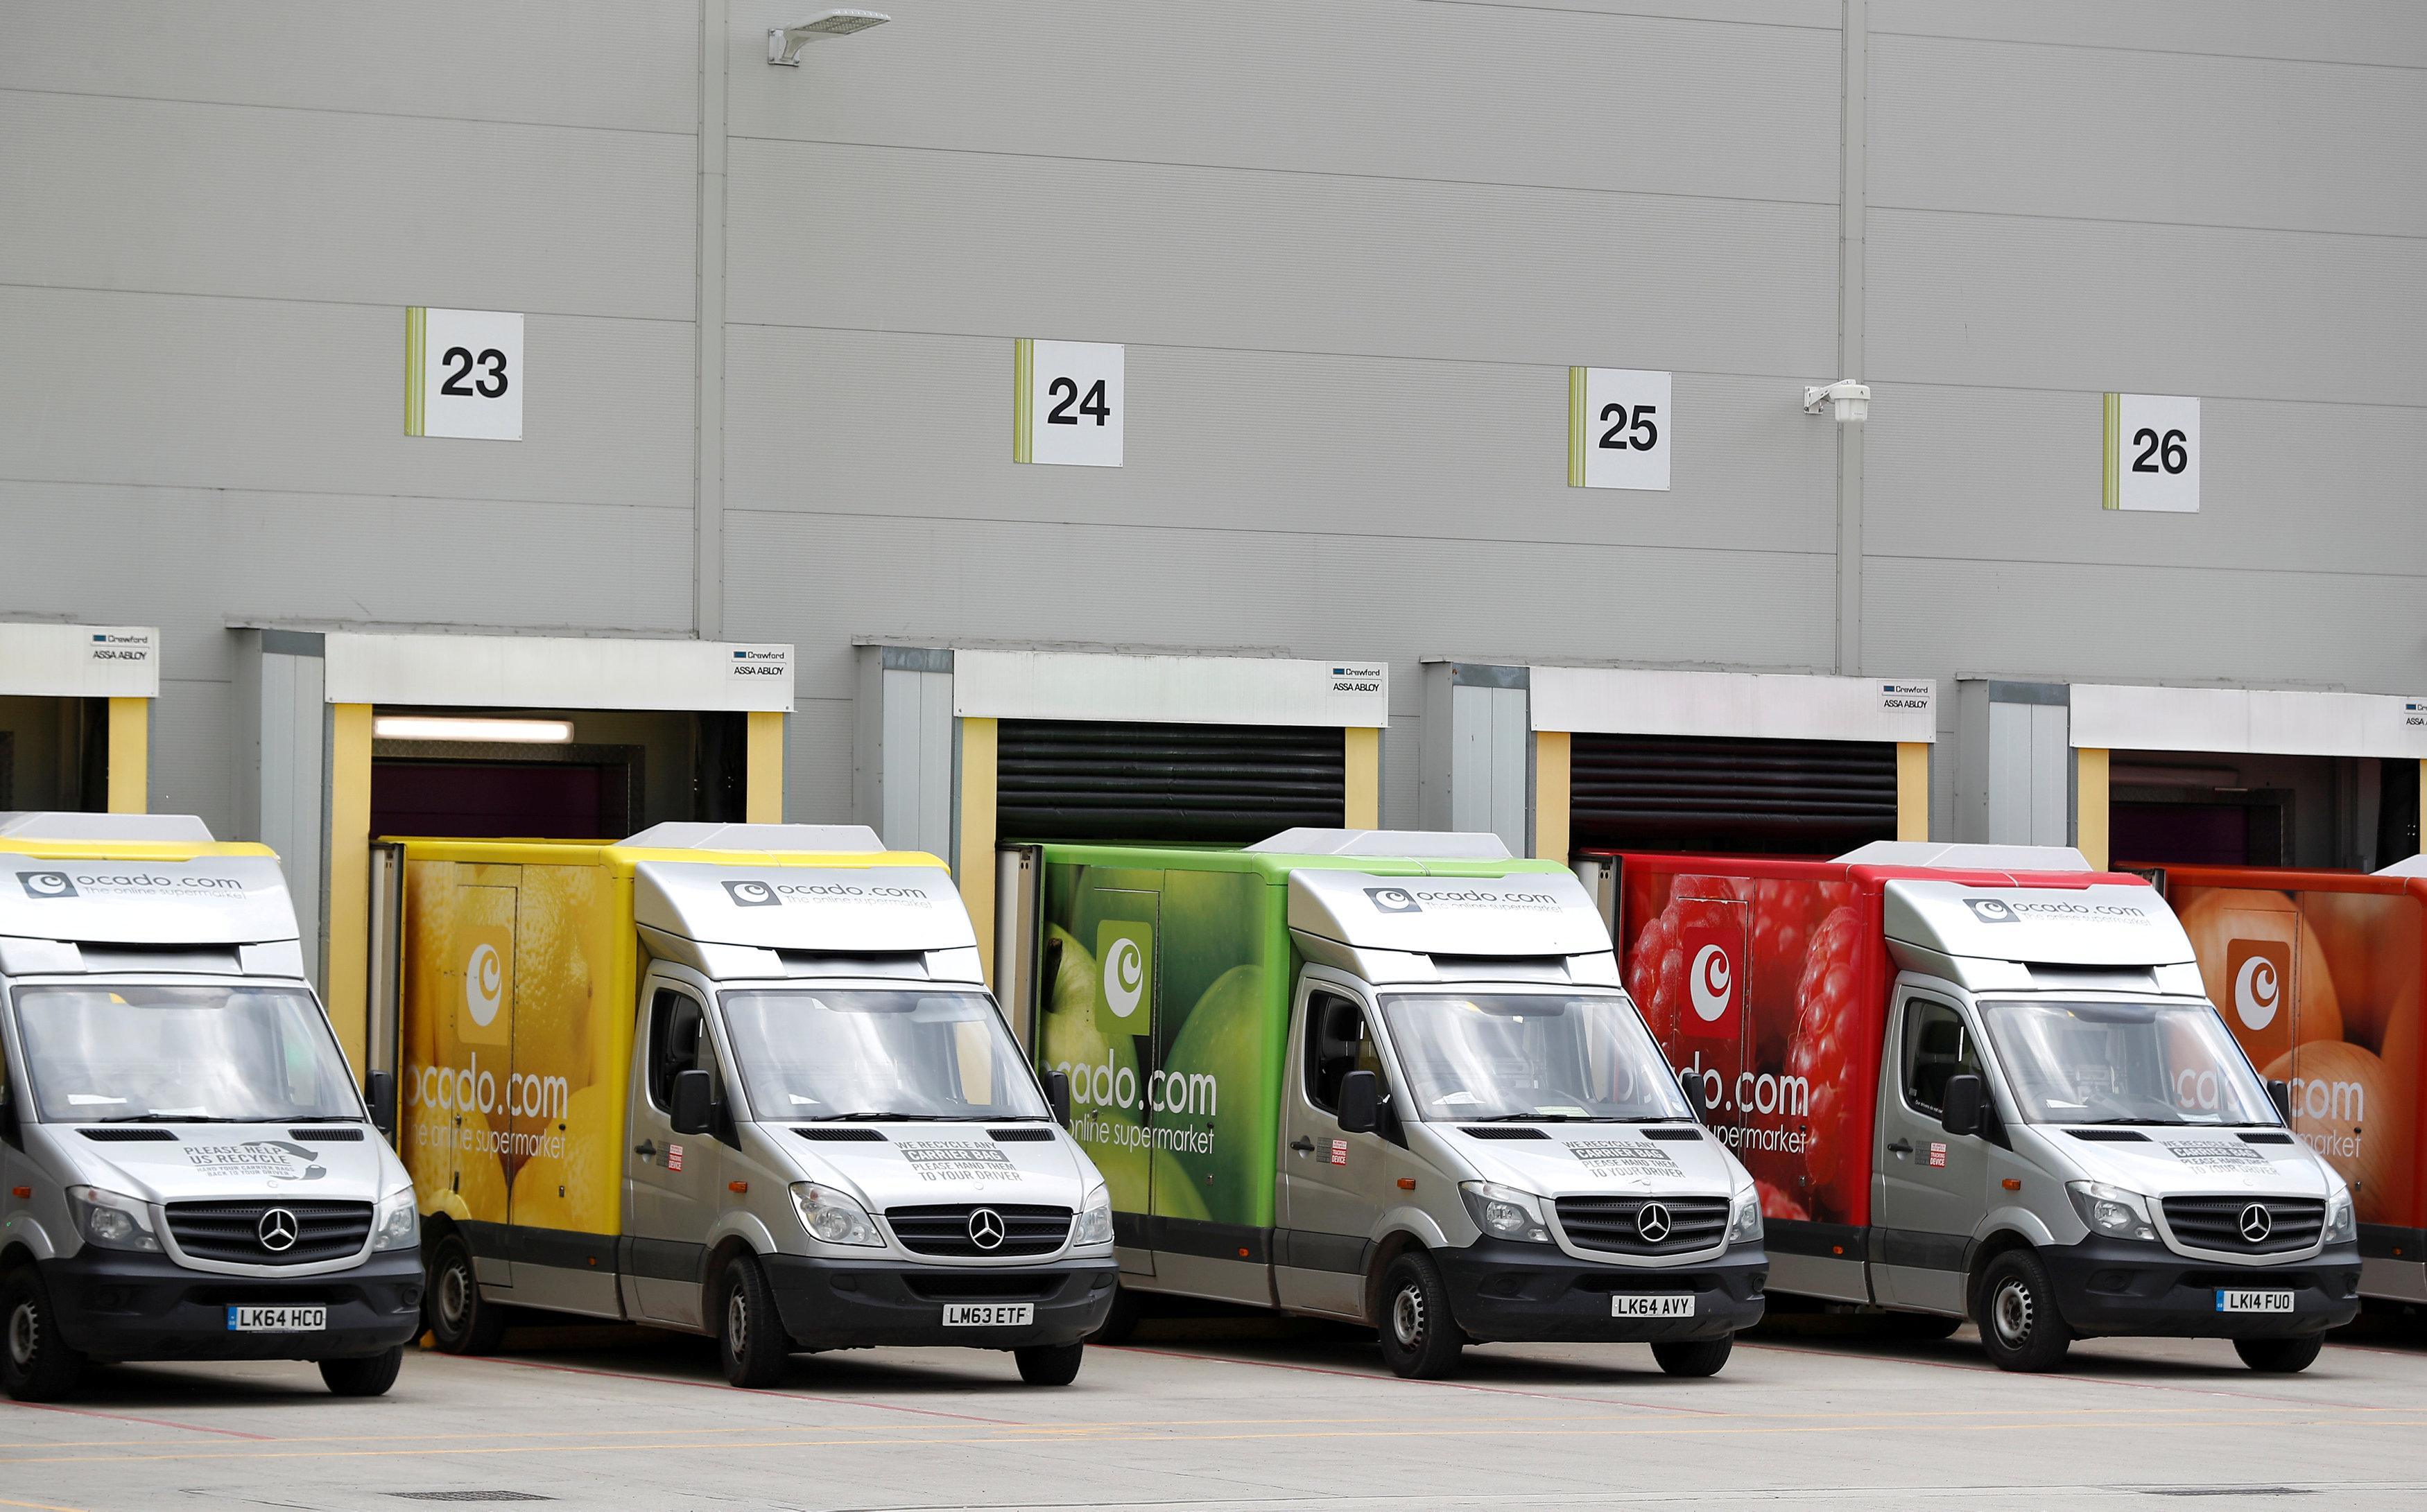 Delivery vans are lined up prior to dispatch at the Ocado CFC (Customer Fulfilment Centre) in Andover, Britain May 1, 2018.  Peter Nicholls